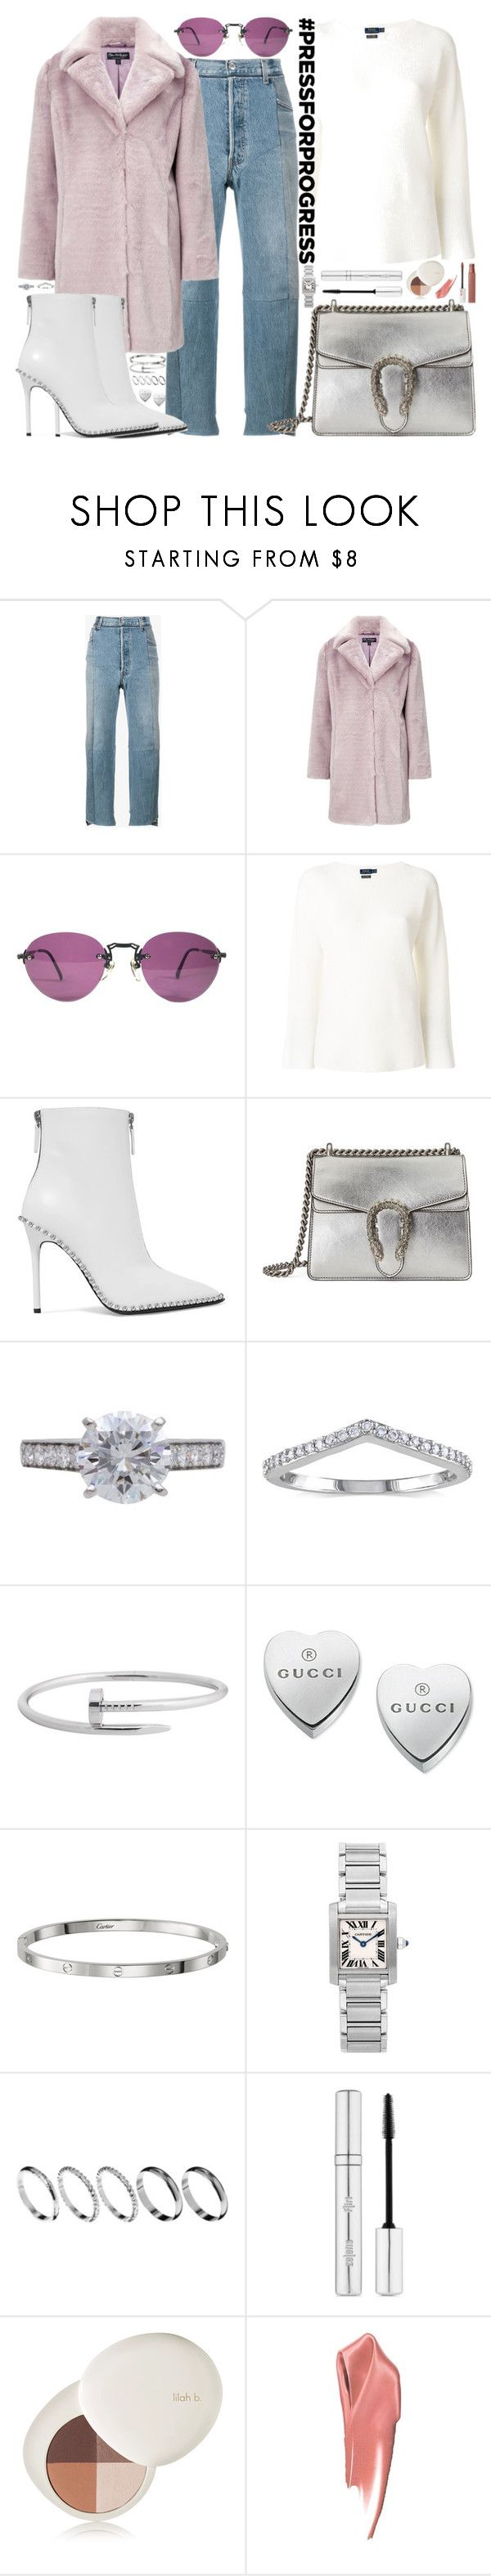 """""""This is the only thing that I don't know how to do"""" by carolsposito on Polyvore featuring Vetements, Miss Selfridge, Polo Ralph Lauren, Alexander Wang, Gucci, Cartier, Miadora, ASOS, Zelens and lilah b."""